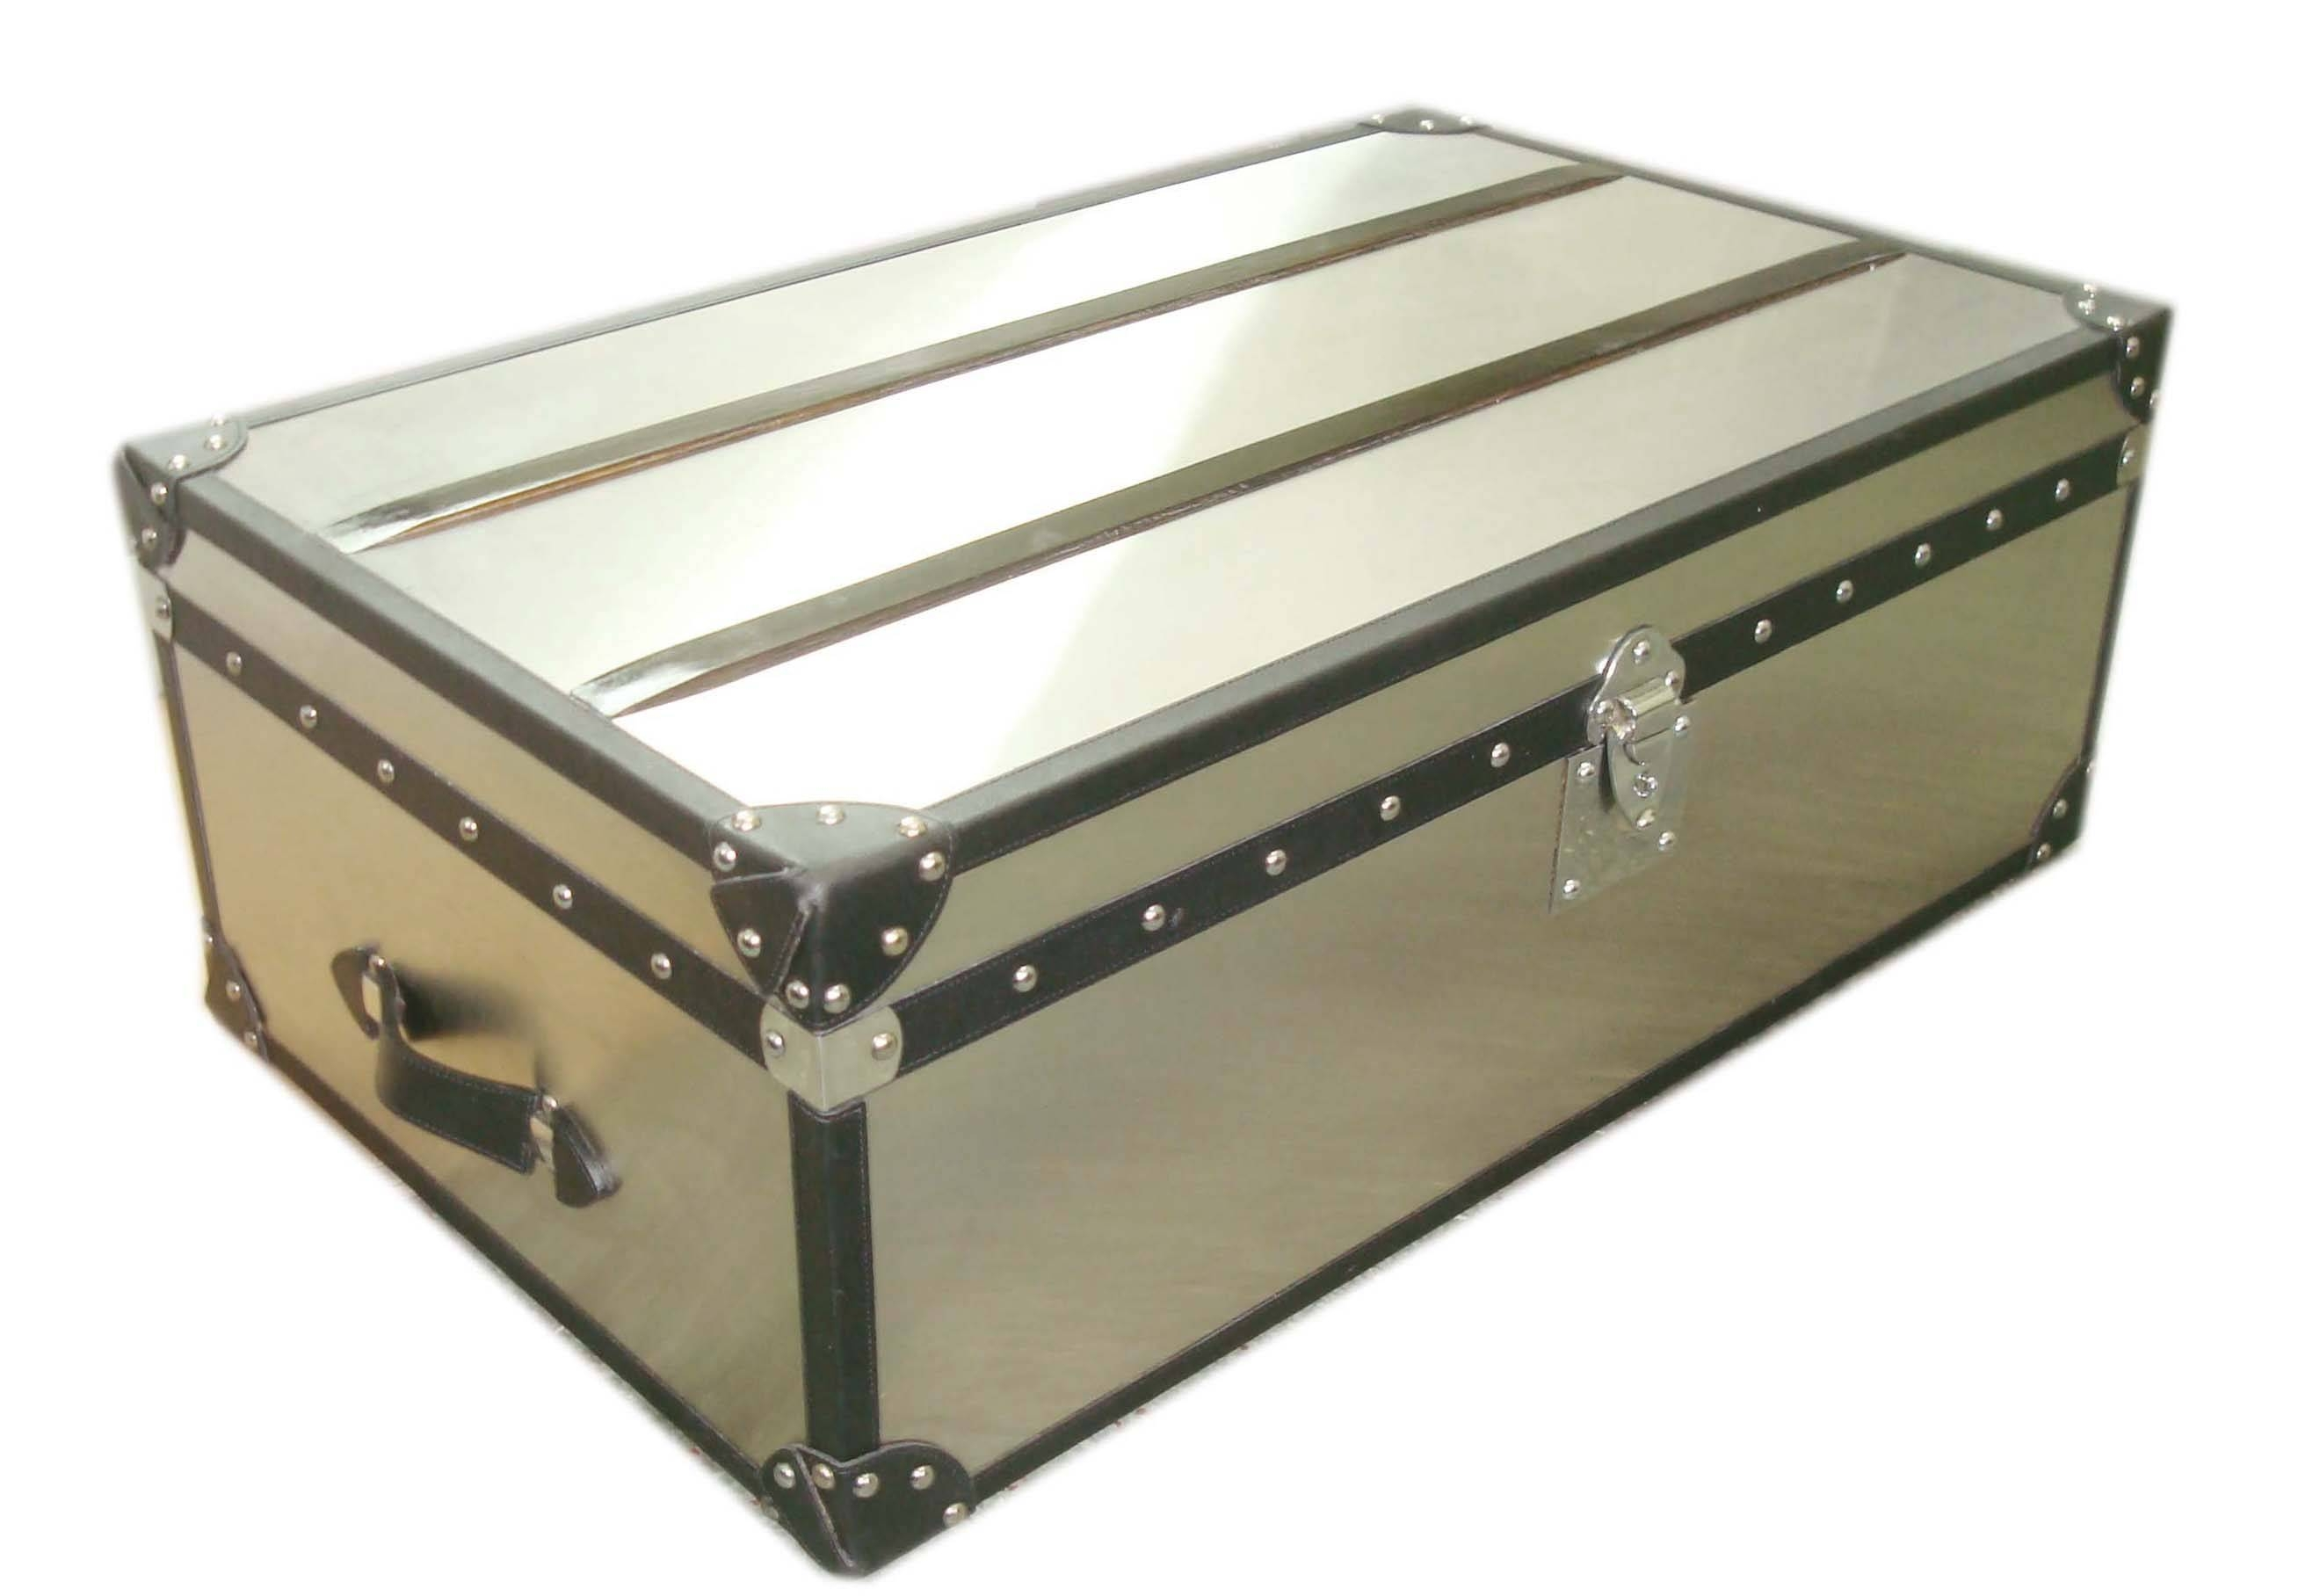 Stainless Steel Trunk Coffee Table - Szahomen with Stainless Steel Trunk Coffee Tables (Image 16 of 30)